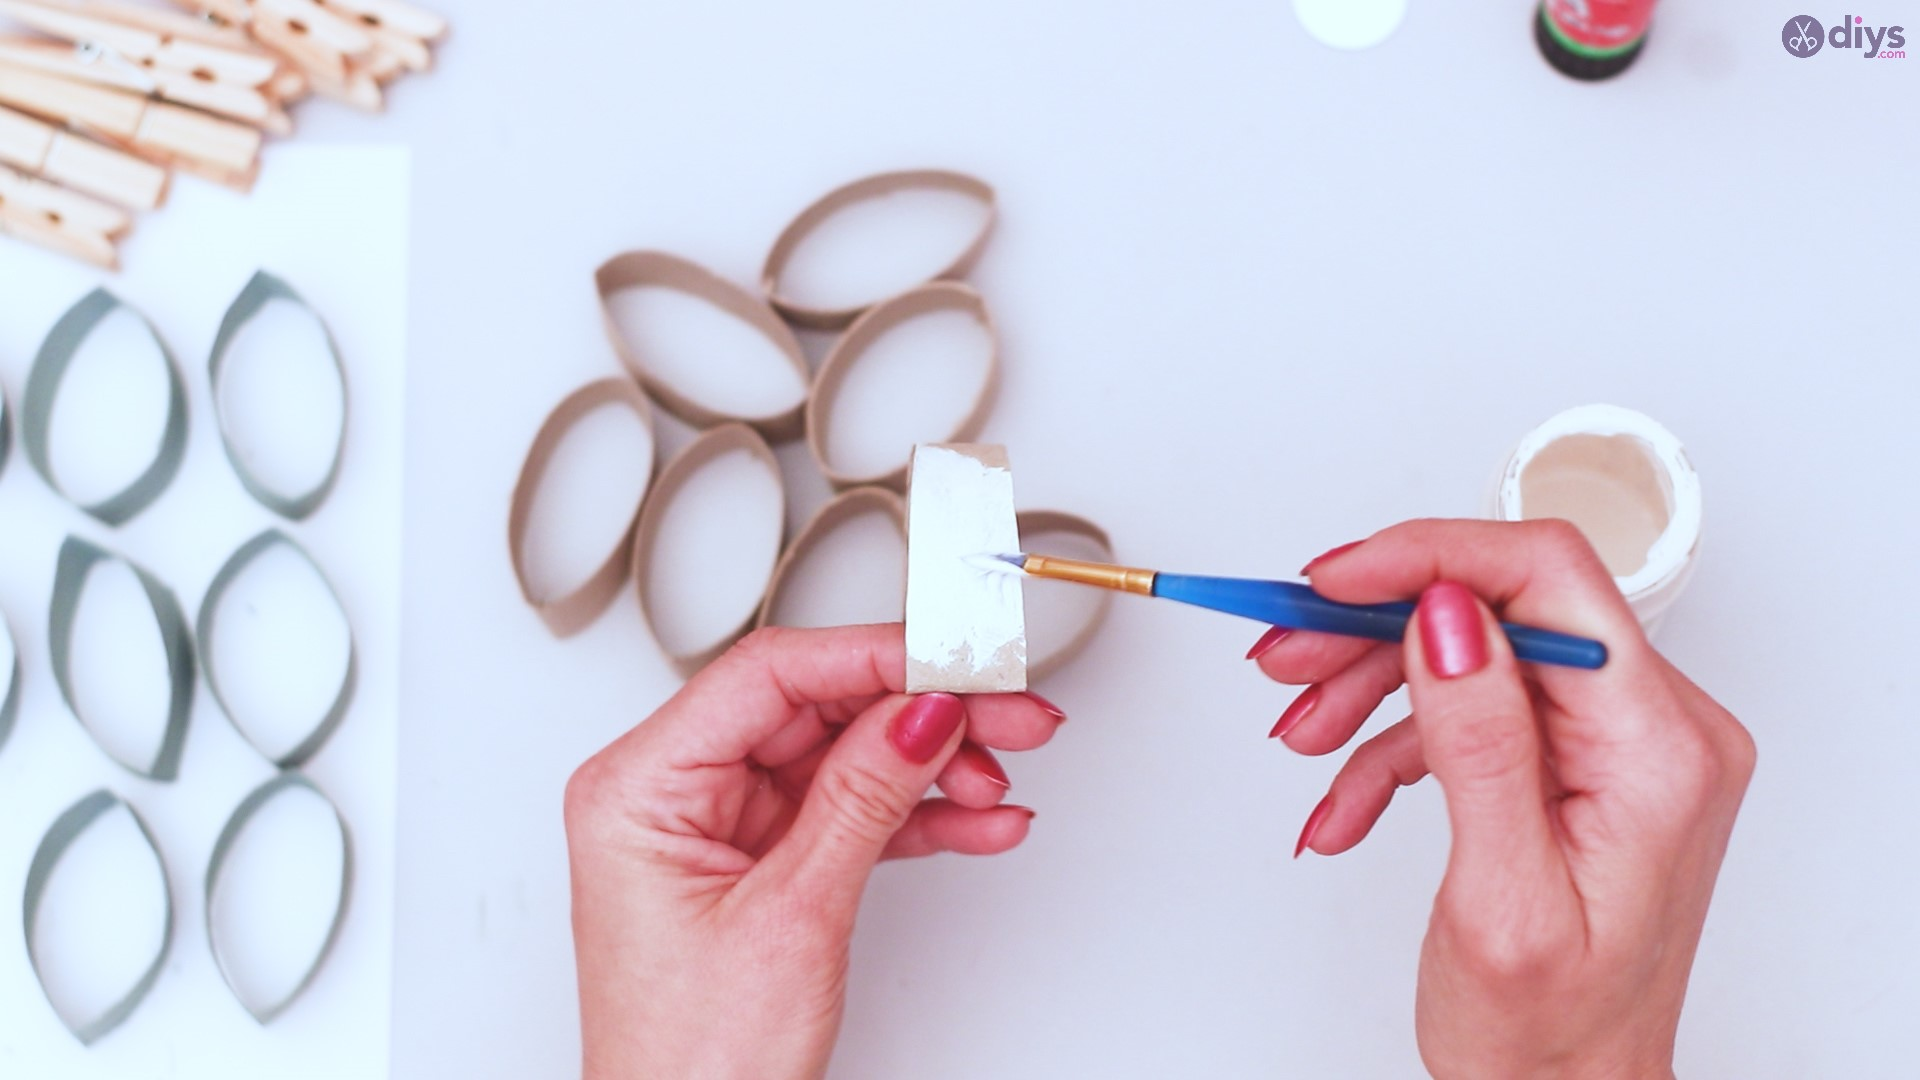 Toilet paper roll wall decor diy project (12)